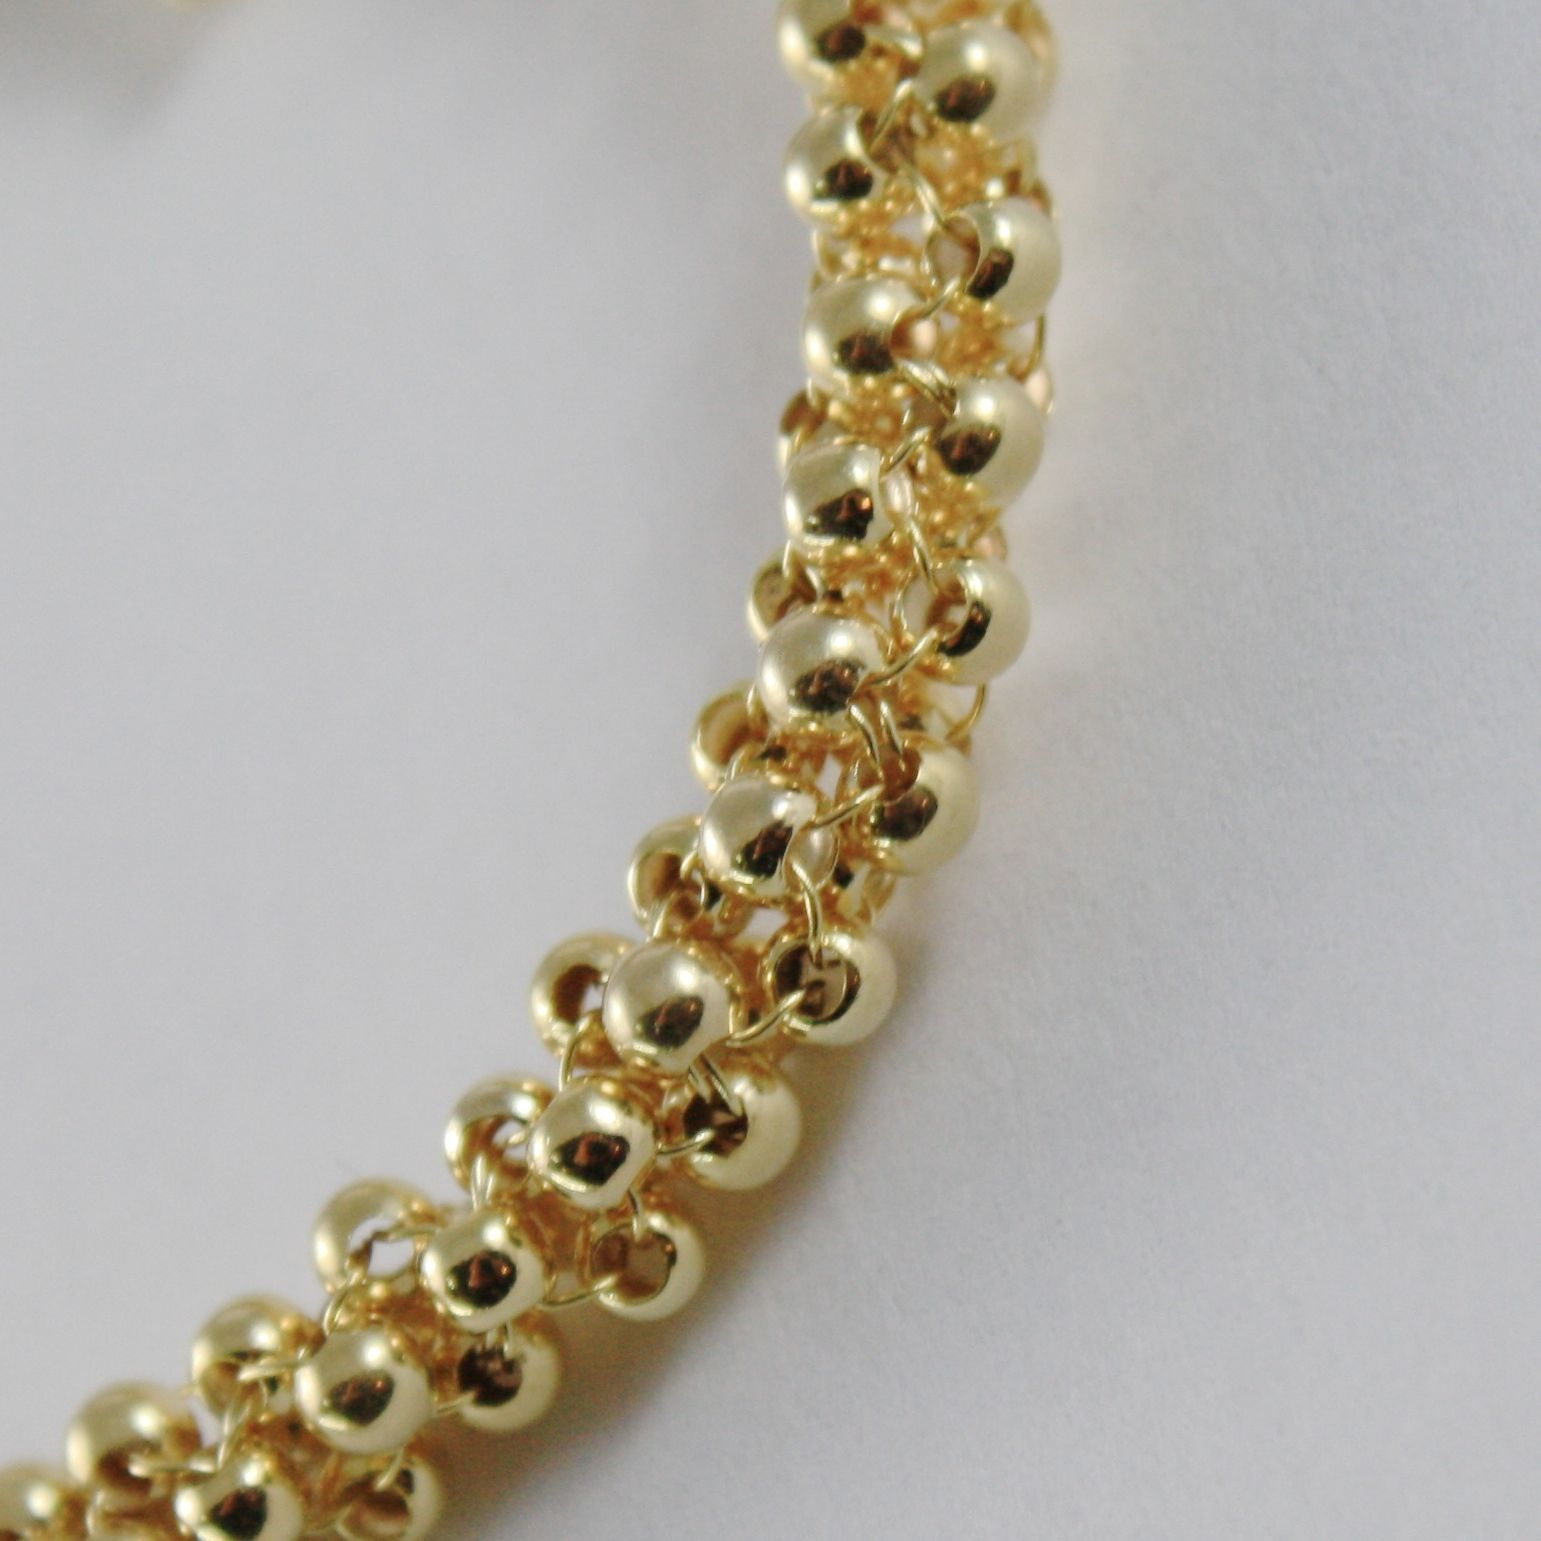 18K YELLOW GOLD BRACELET BIG BASKET LINK, 4 CIRCLES ROLO ROWS, MADE IN ITALY